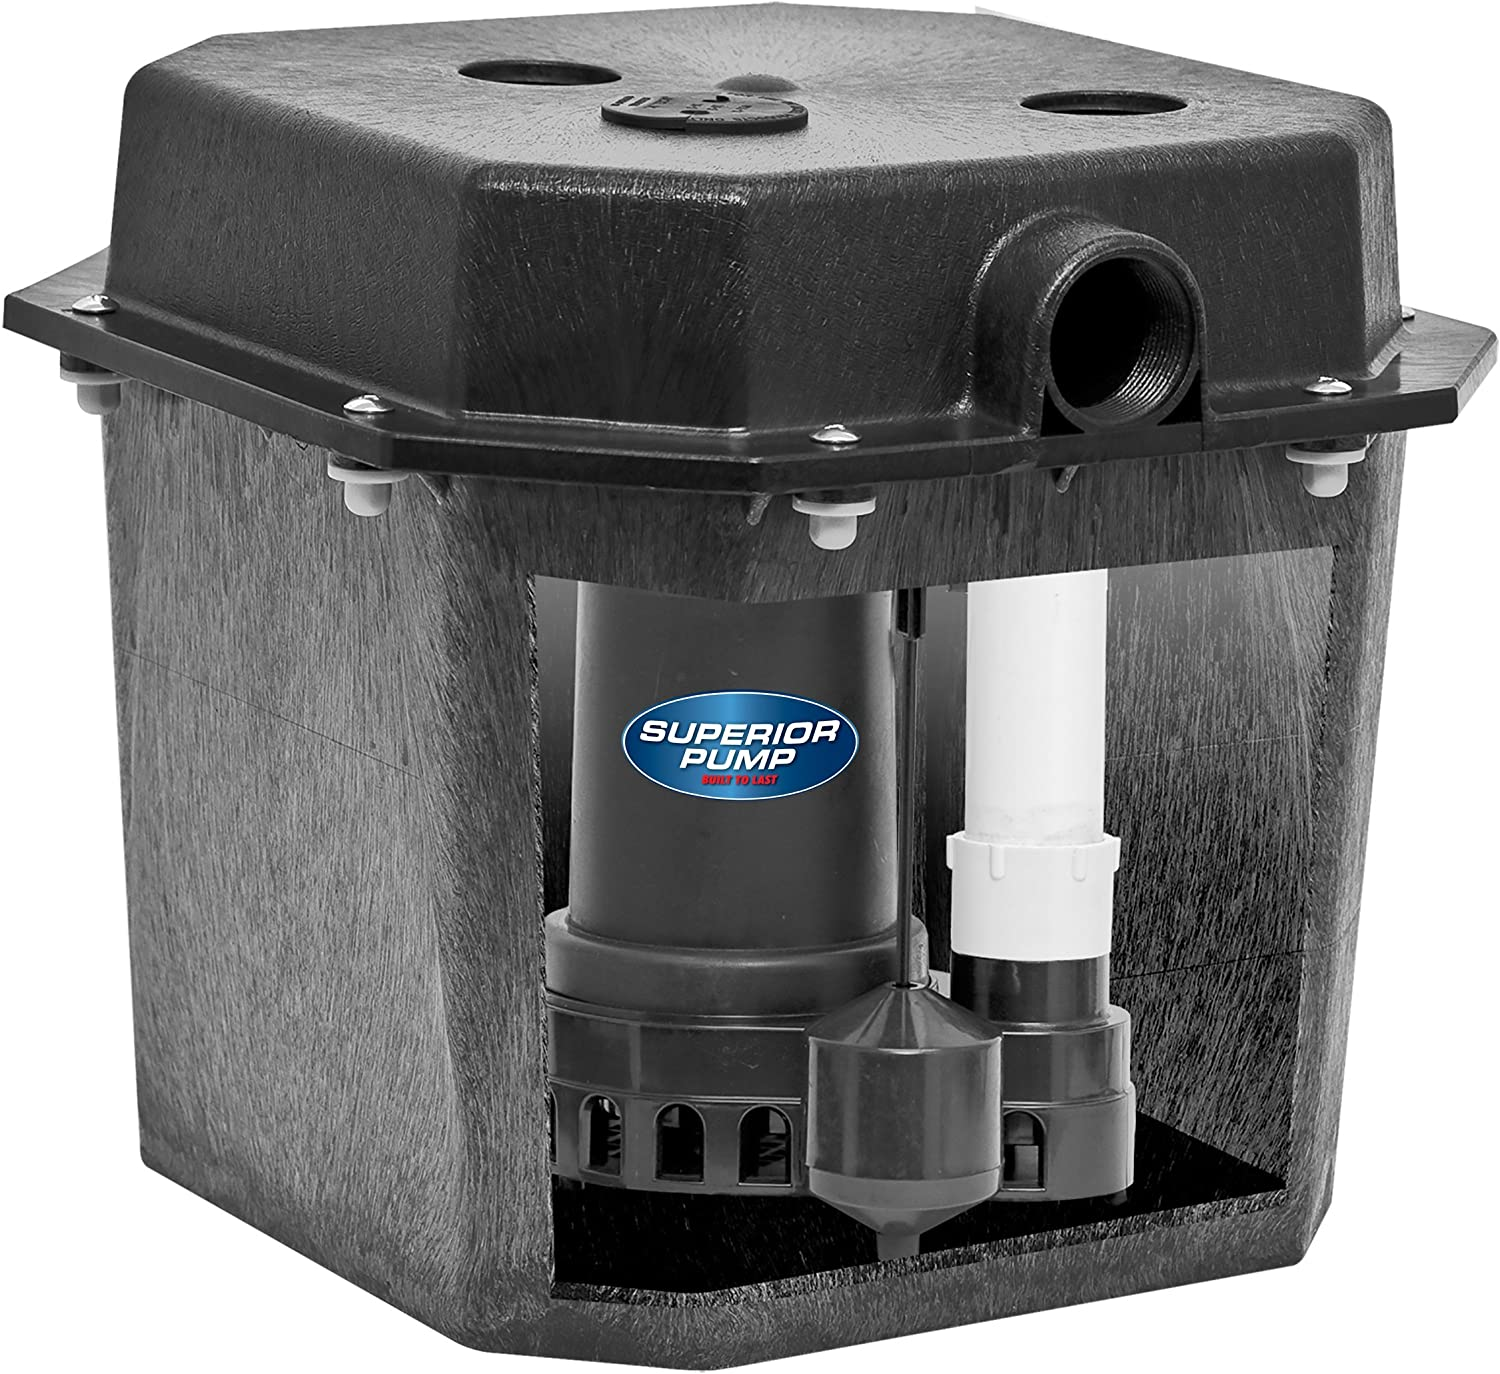 Superior Pump 92072 1/3 HP Pre-Assembled Submersible Remote Sink Drain Pump System